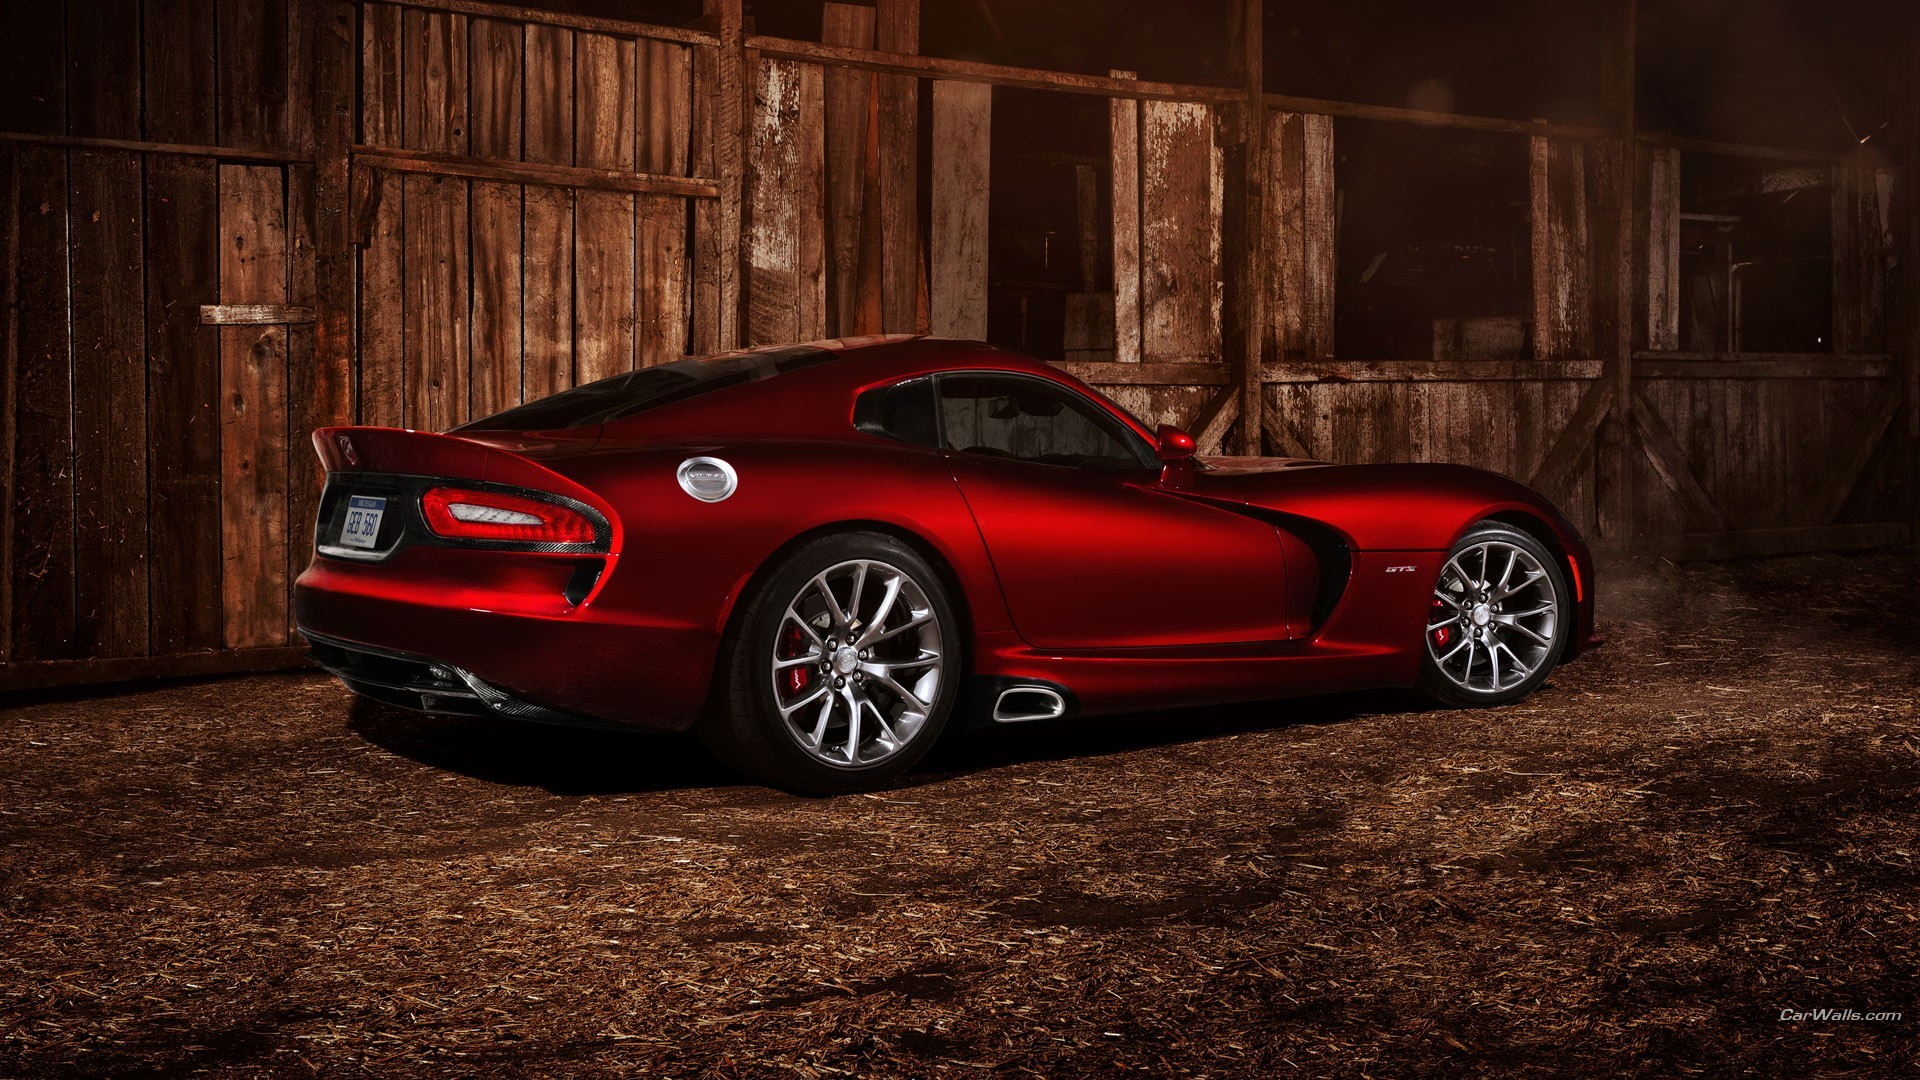 1920x1080 2017 Dodge Challenger Alamogroup In Viper GTS Redesign